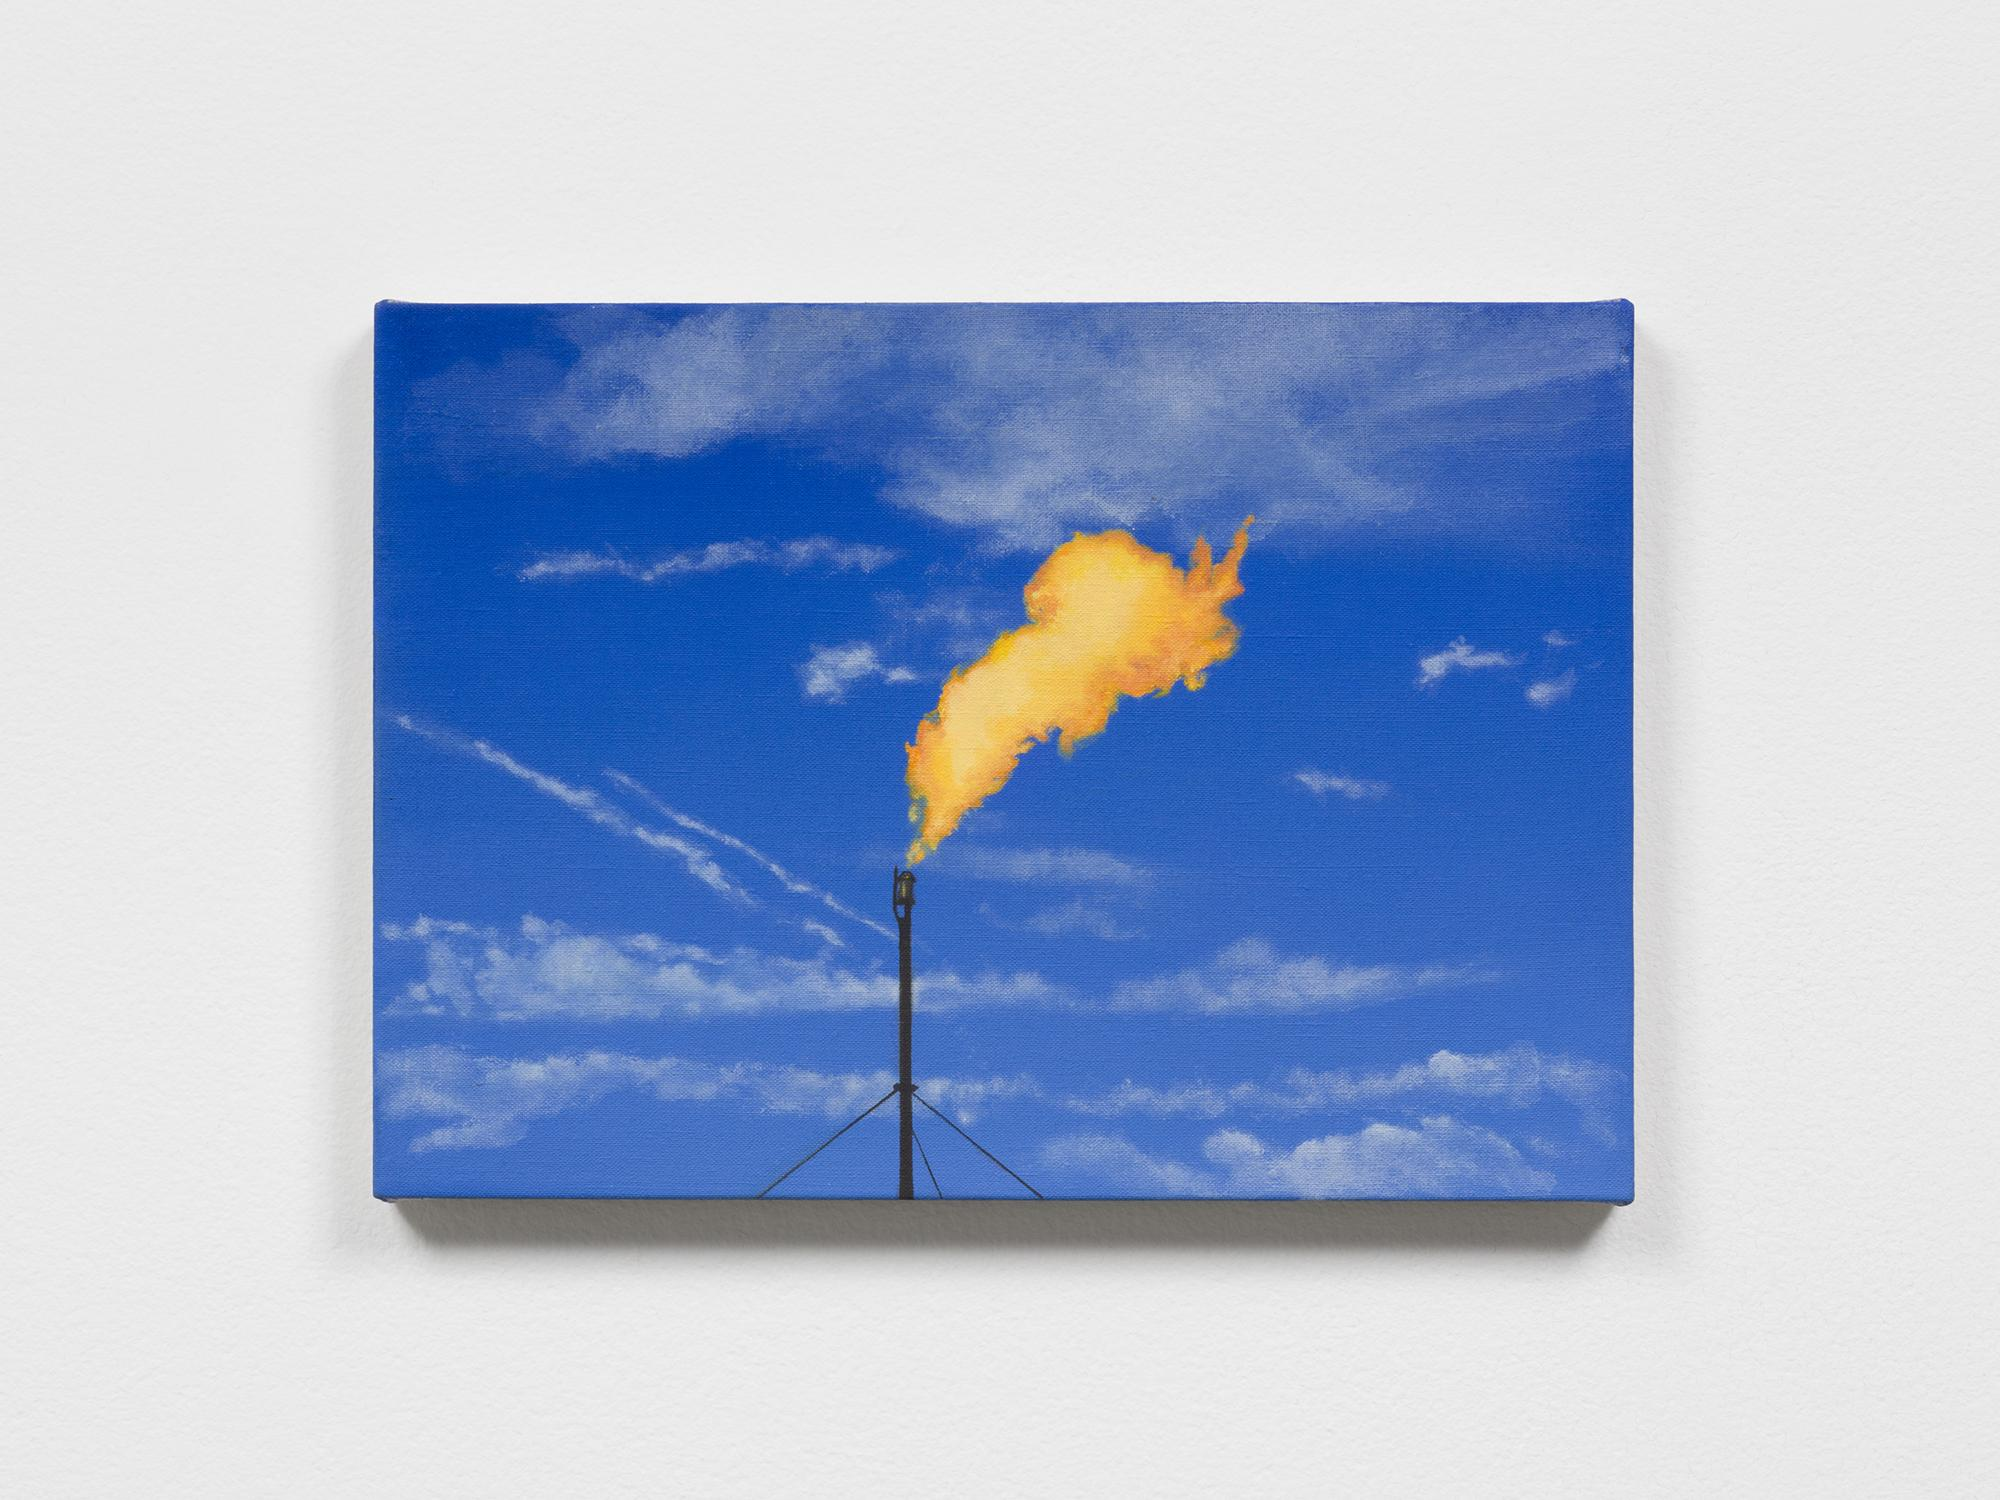 Dana POWELL Flare 2019 Oil on linen 10 x 14 inches...